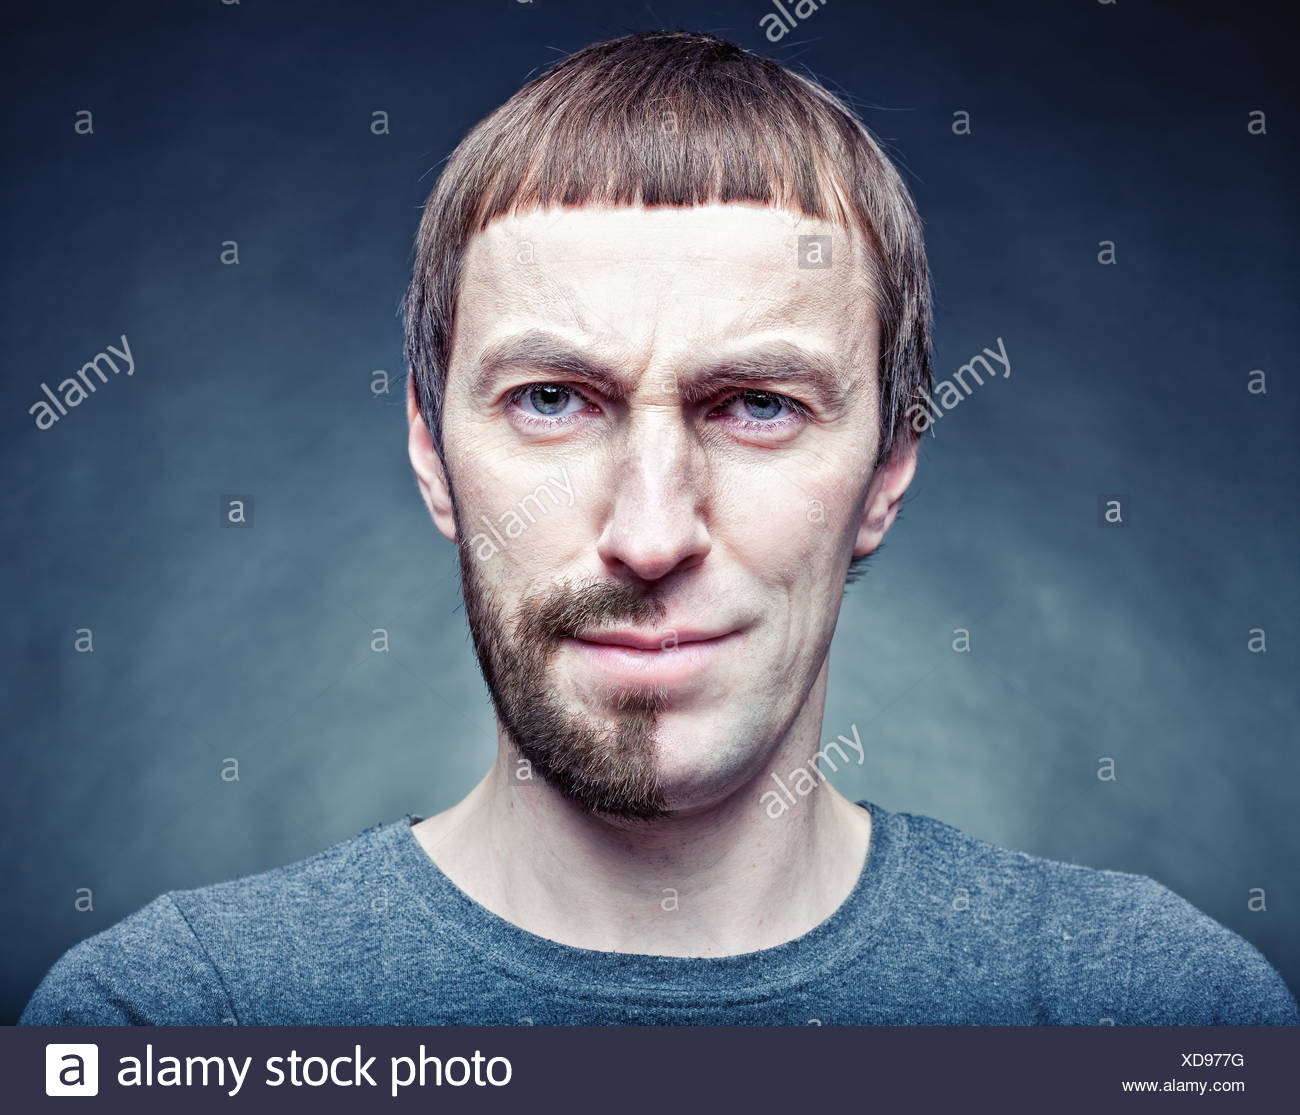 half stage shaving the face. photo concept - Stock Image